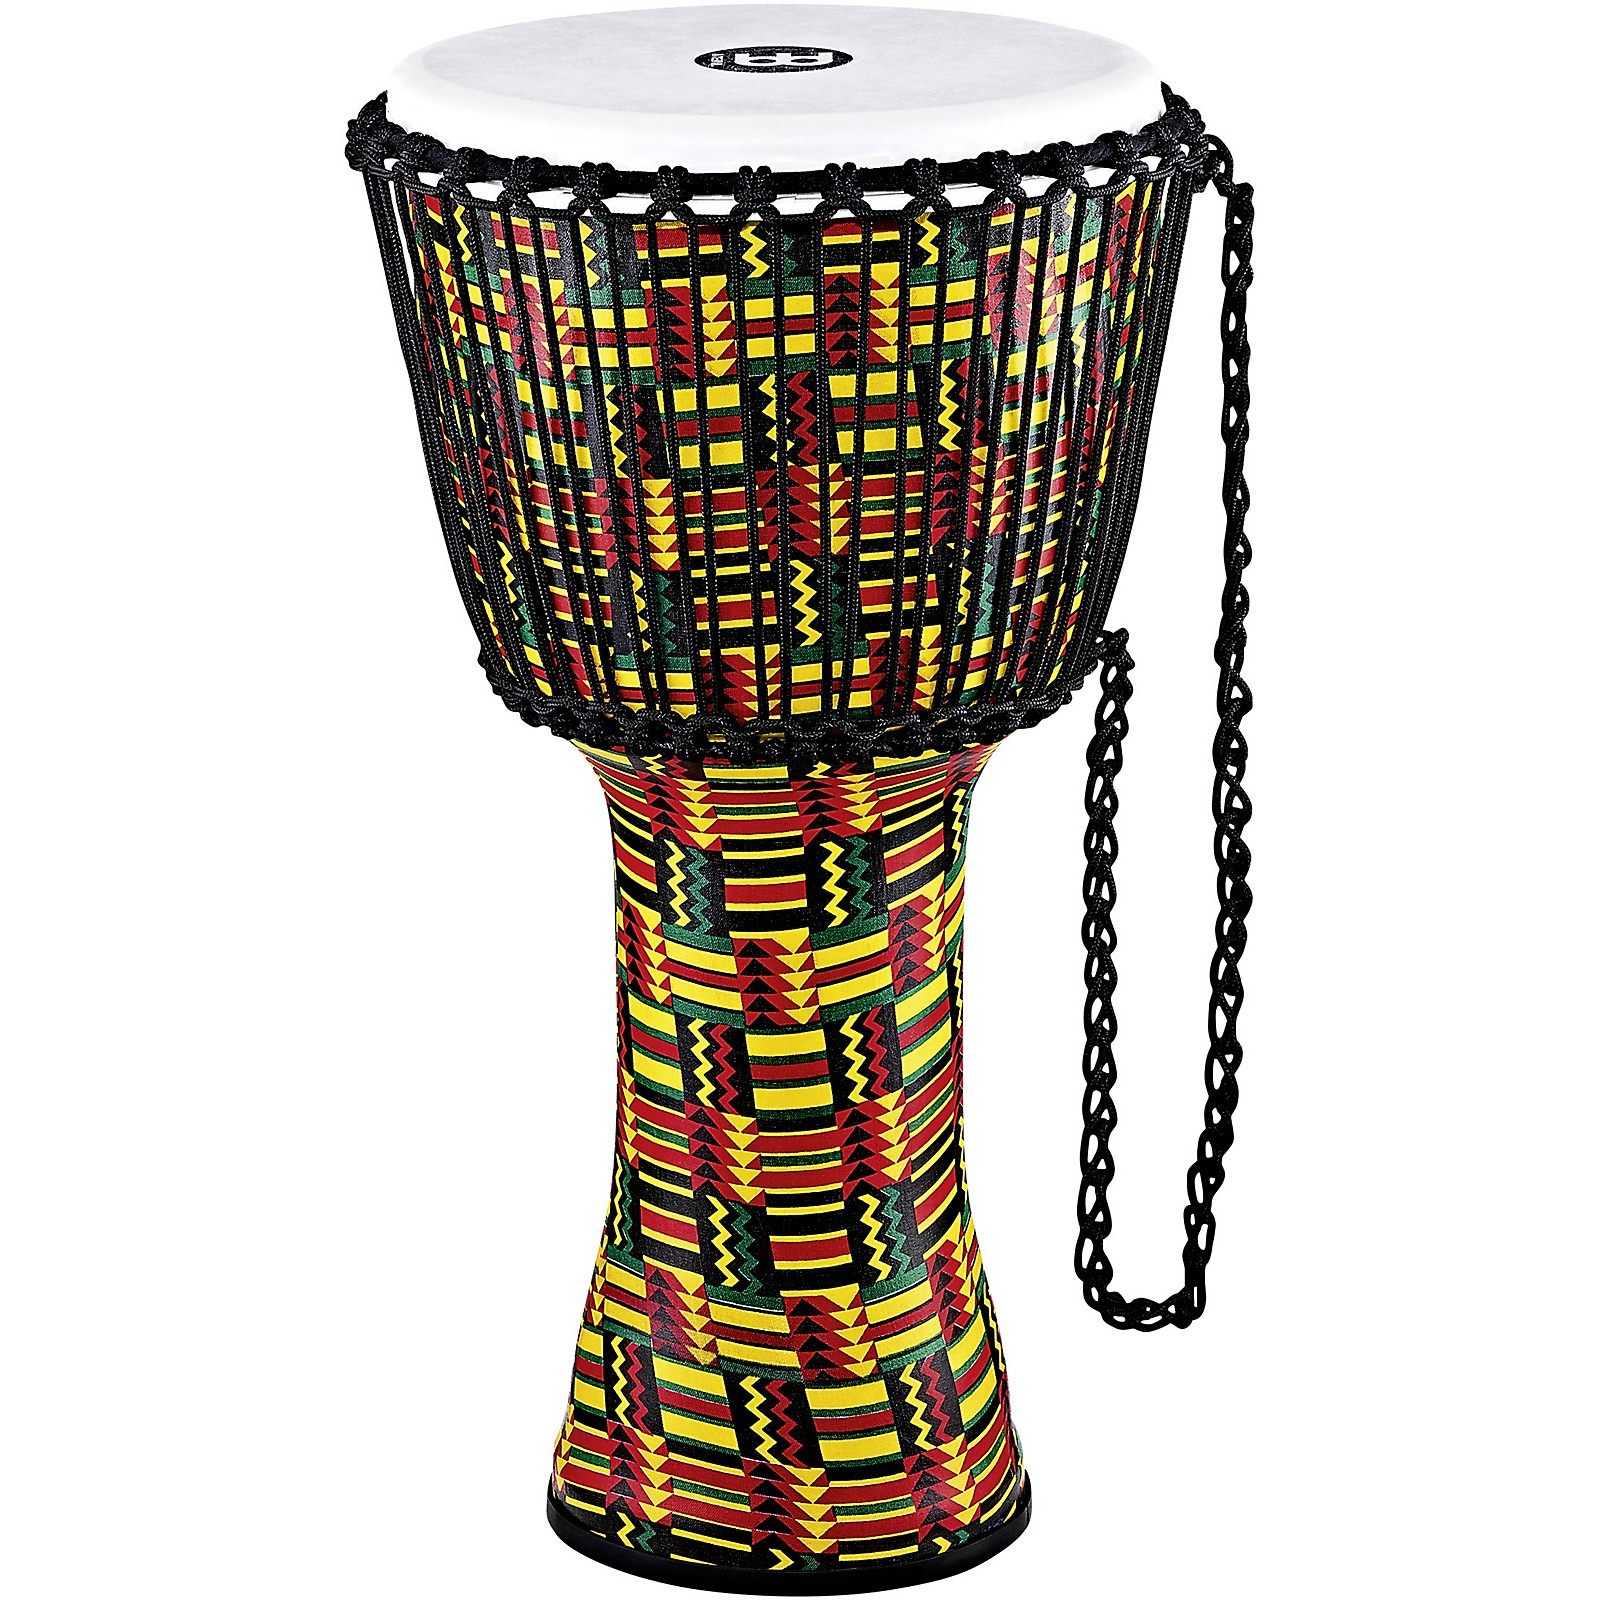 Meinl Travel Series Rope Tuned Djembe with Synthetic Head in Simbra Finish